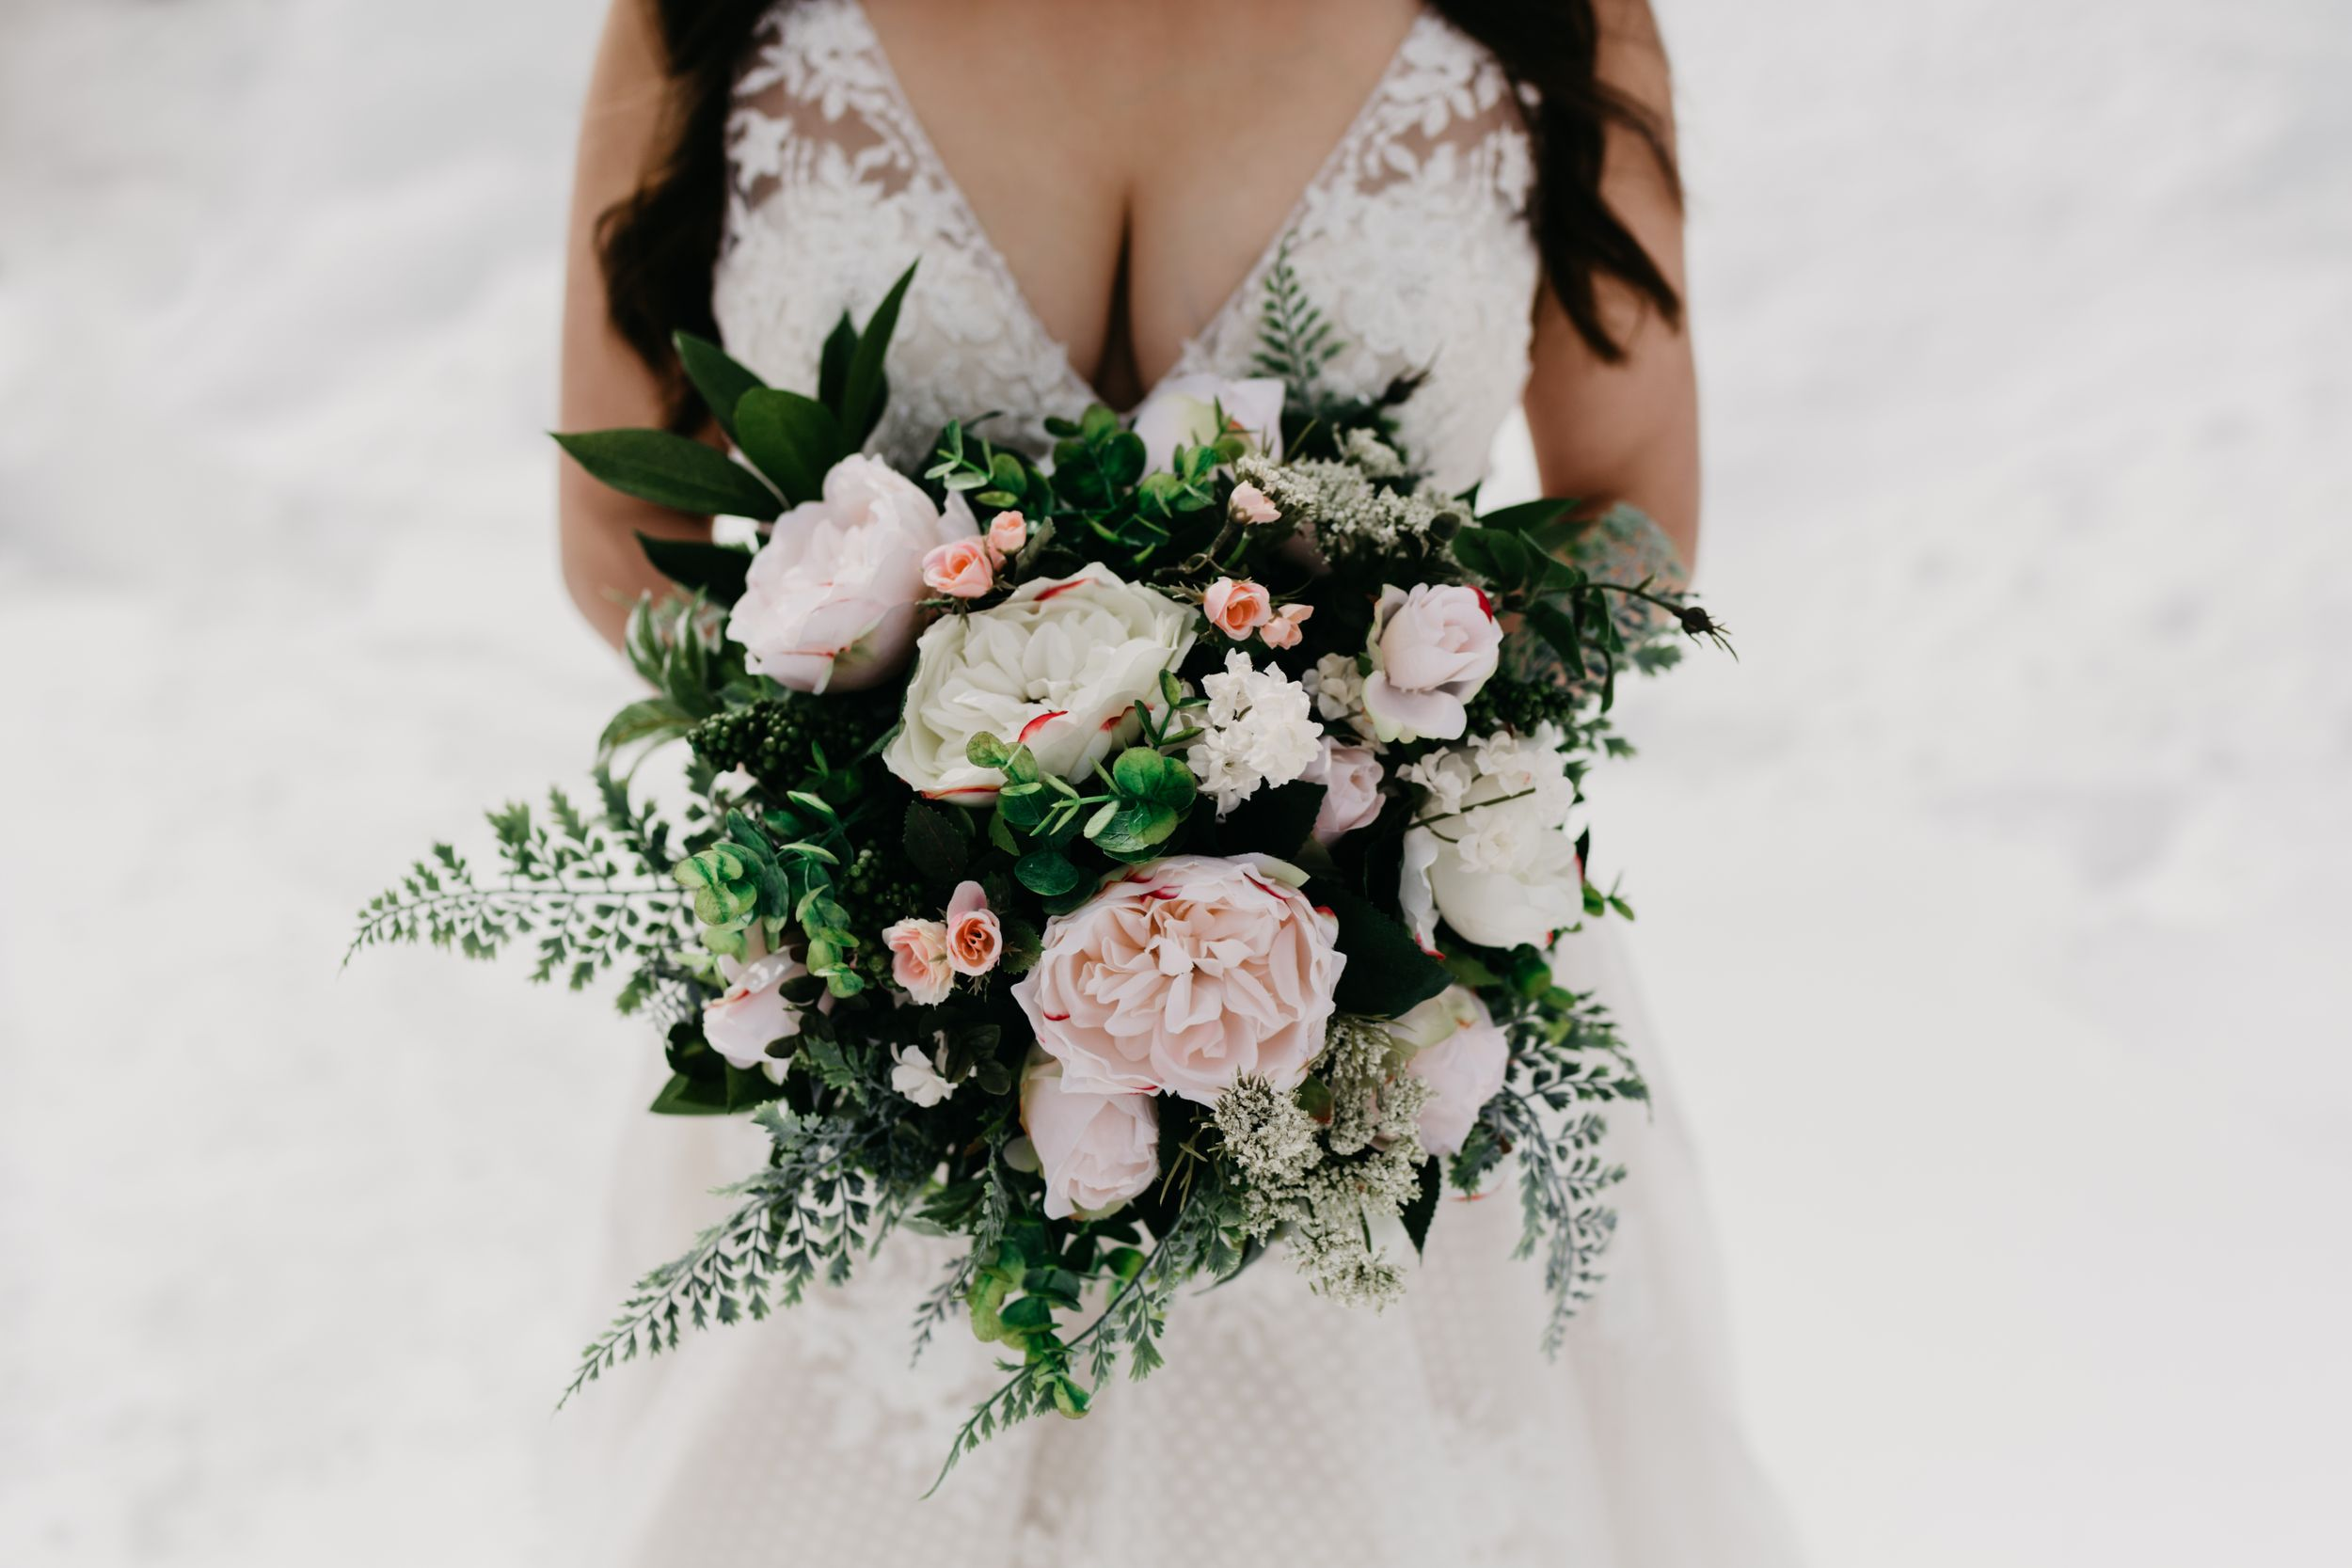 bridal bouquet, flower ideas, bouquet, ideas, colorado wedding ideas, winter wedding inspiration, Breckenridge weddings